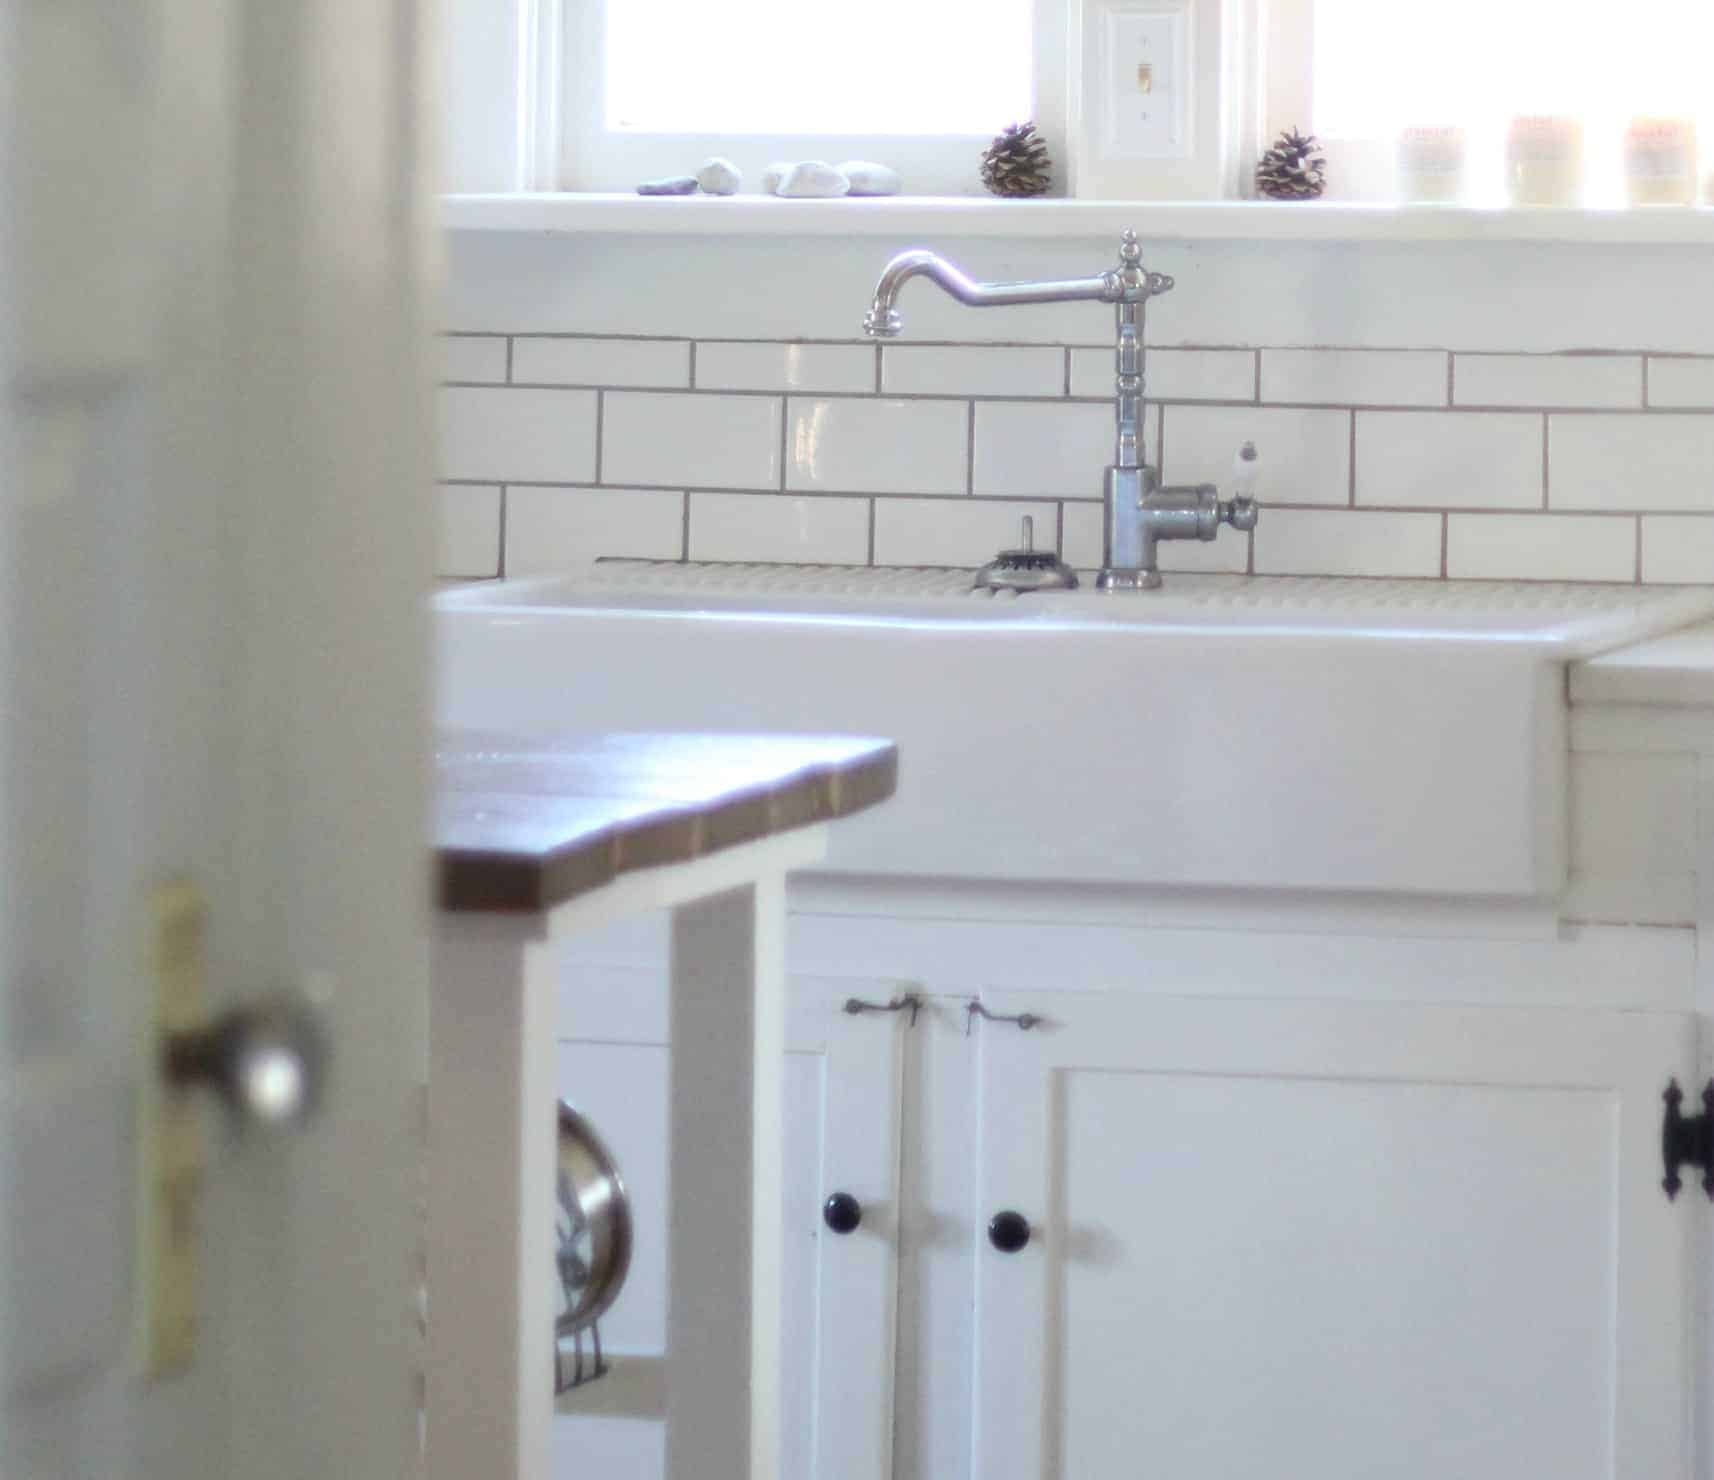 Genial Our Experience With The IKEA Domsjo Double Bowl Farmhouse Sink   Farmhouse  On Boone